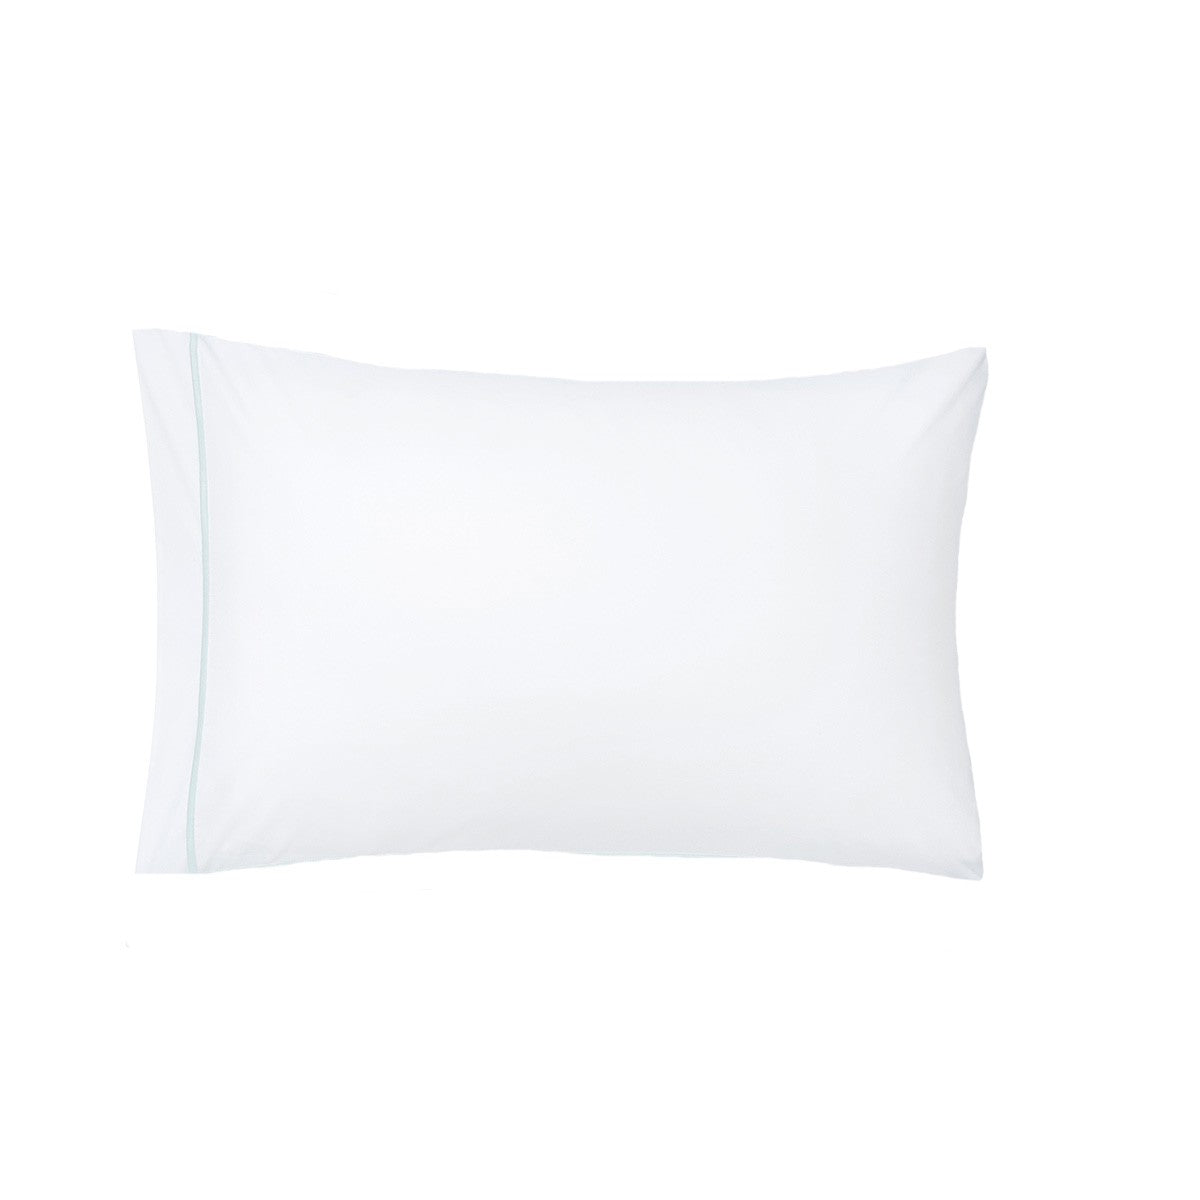 Athena Blanc Standard Pillow Case